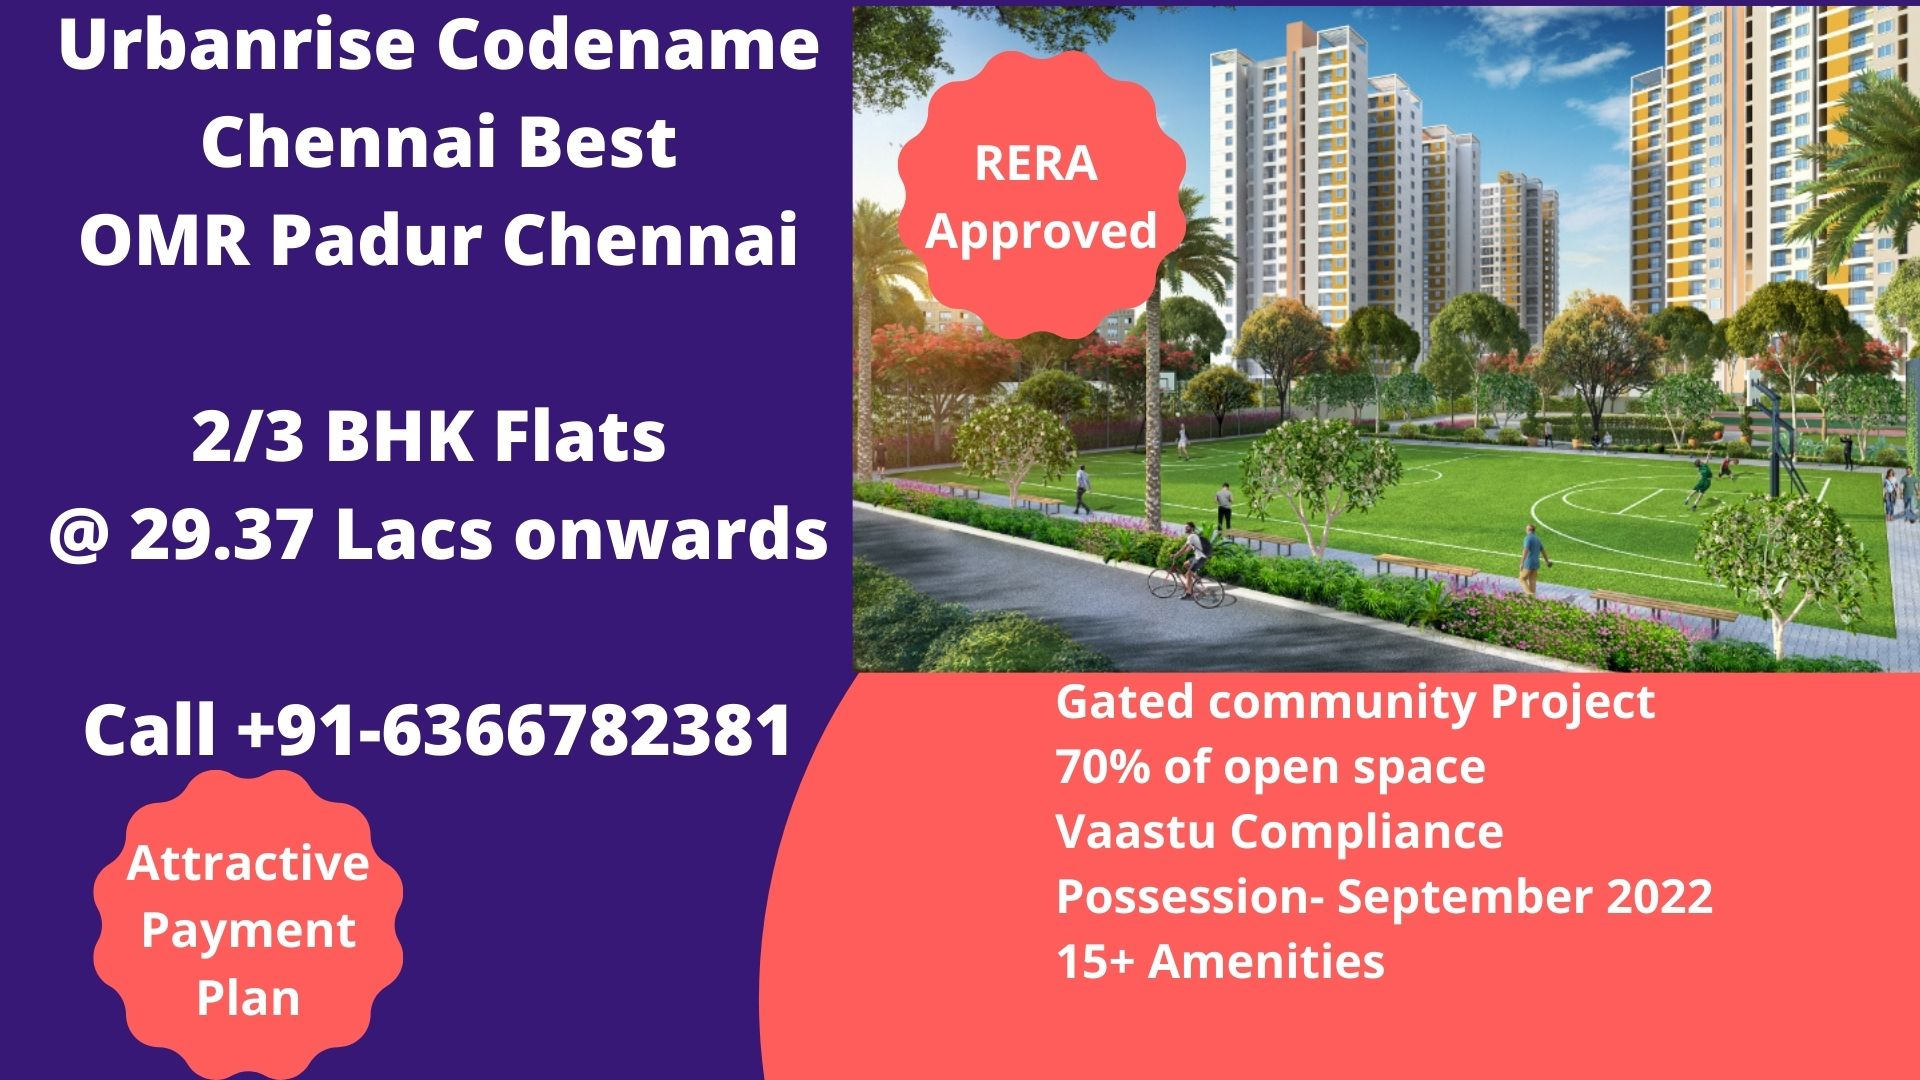 Urbanrise Codename Chennai Best